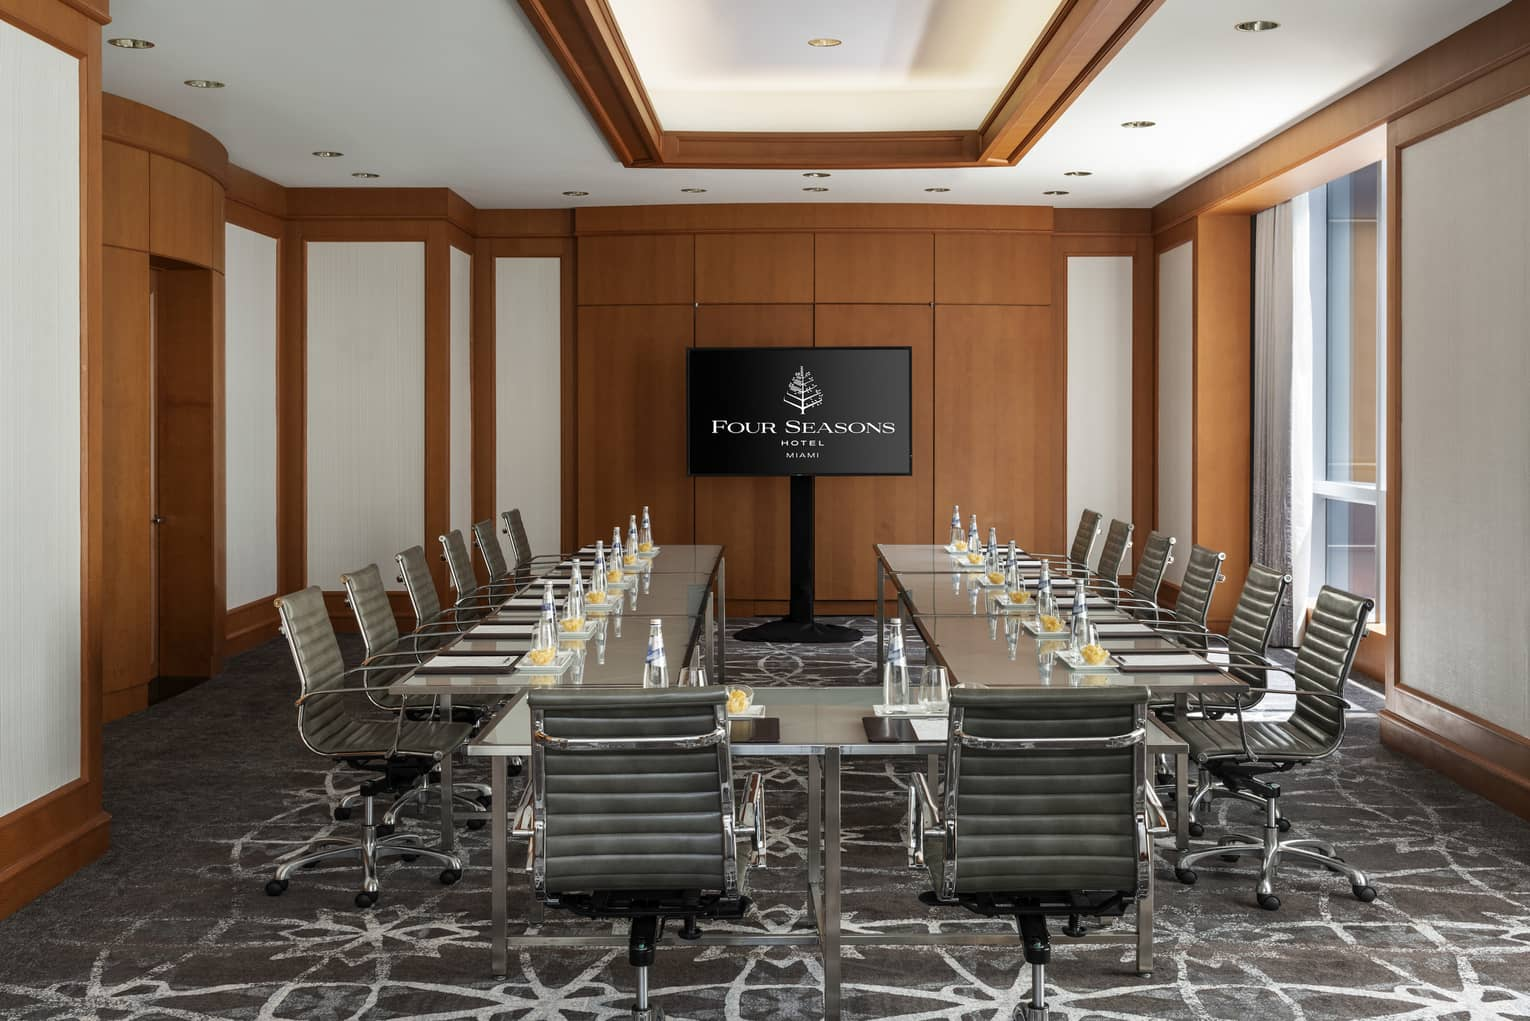 A view of the Key Biscayne Meeting Room